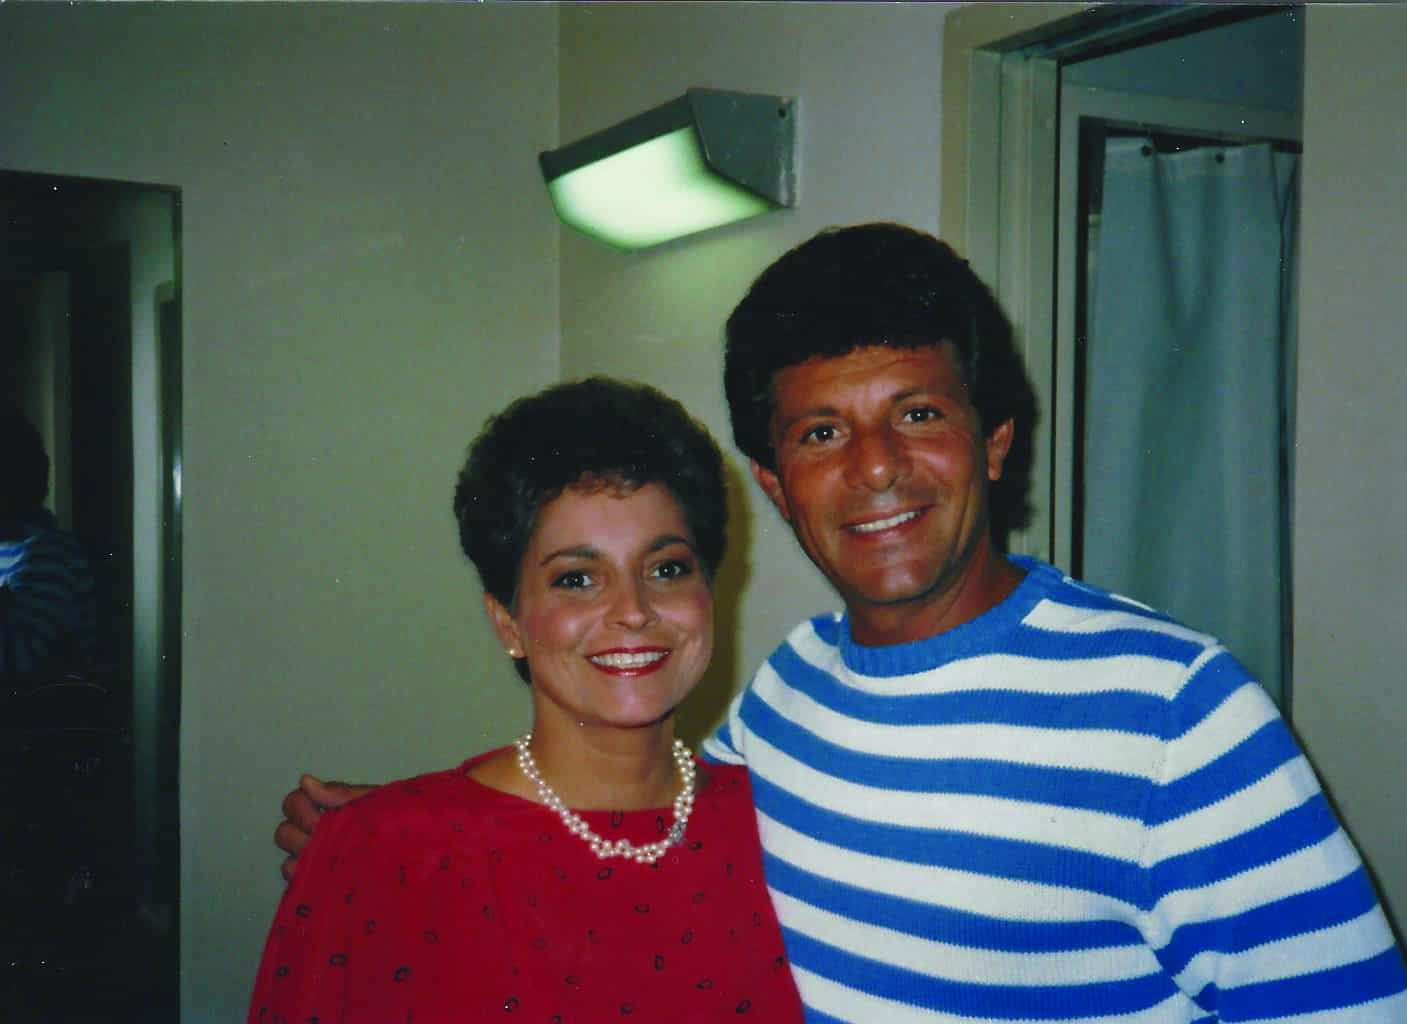 Arlene with singer Frankie Avalon at an American Bandstand event.